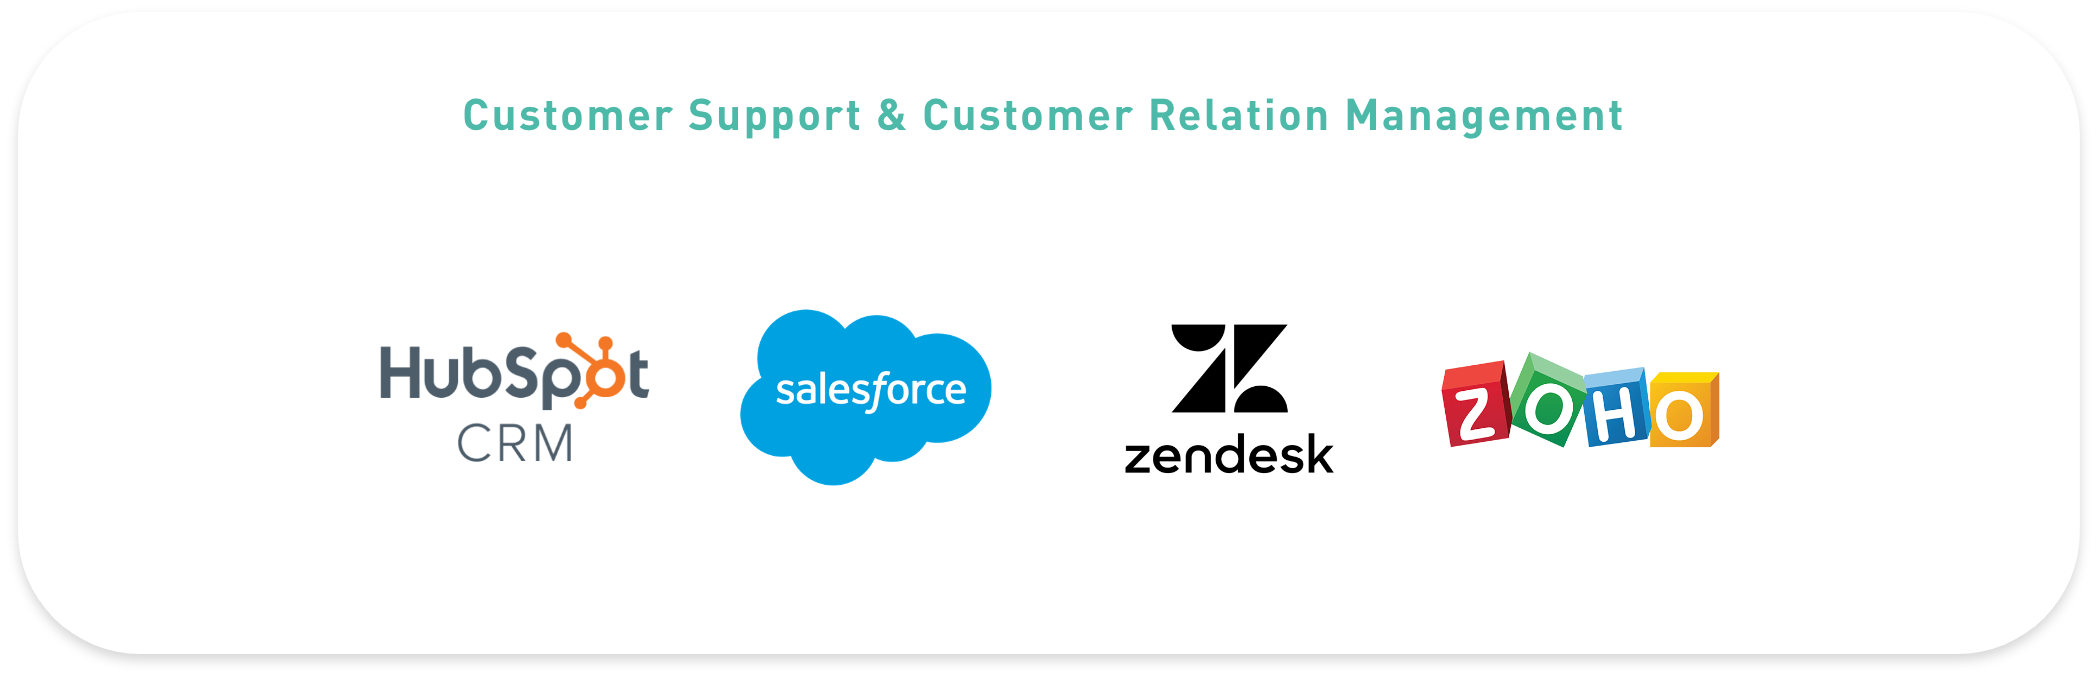 Customer Support & CRM Pillar Page